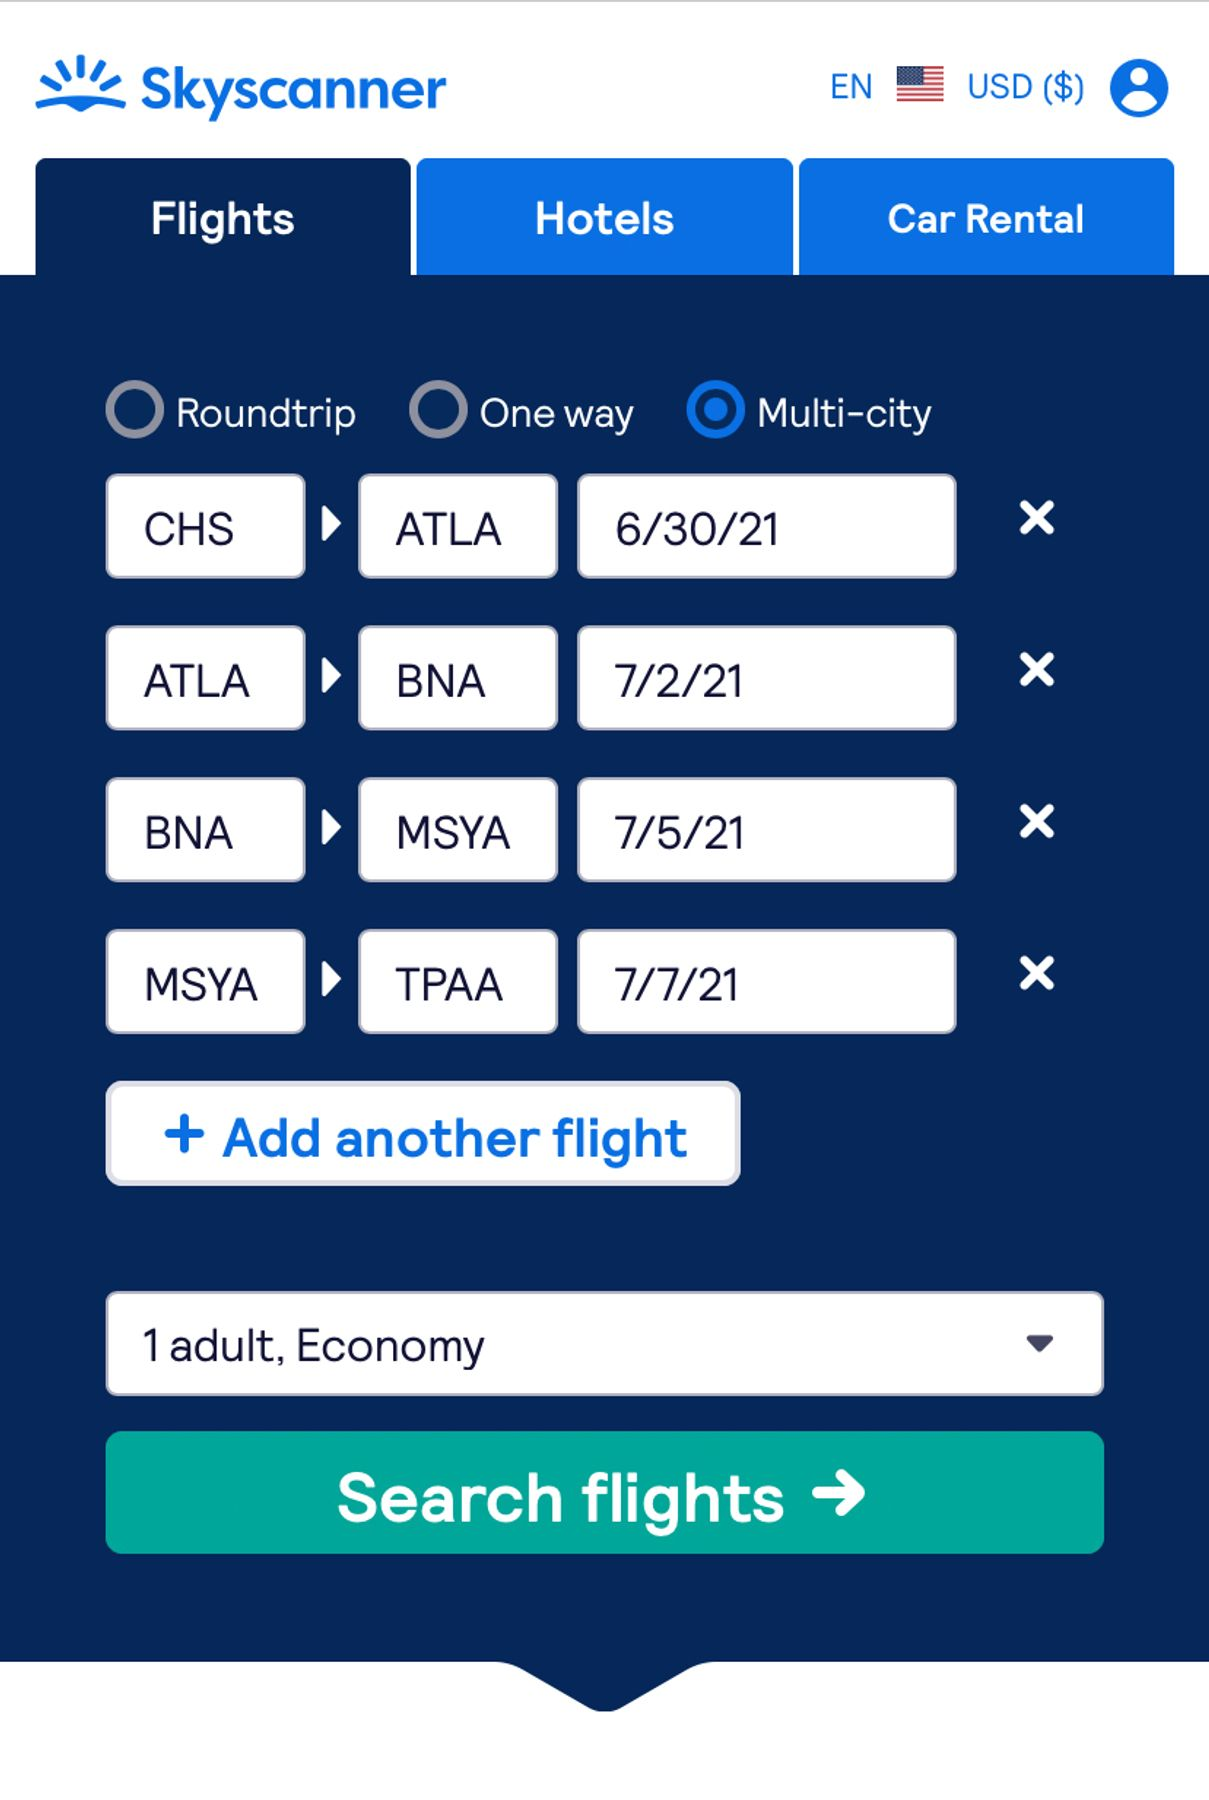 Screenshot of starting a multi-city flight search in Skyscanner